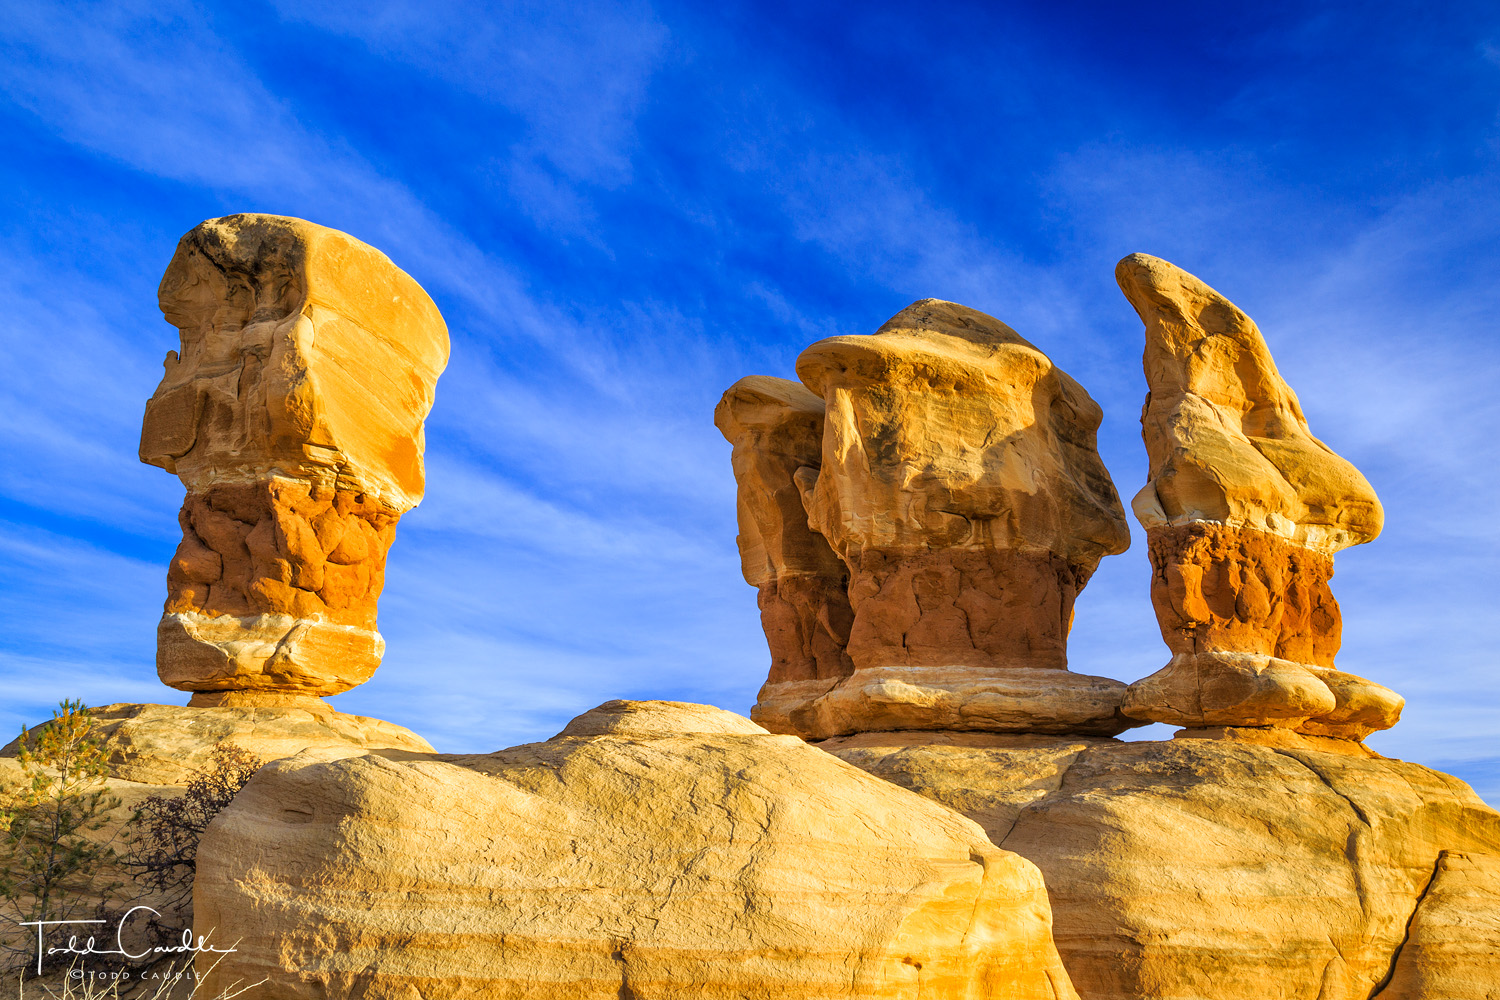 Enormous free-standing monoliths at Devil's Garden defy the ravages of erosion to remain upright — for now.